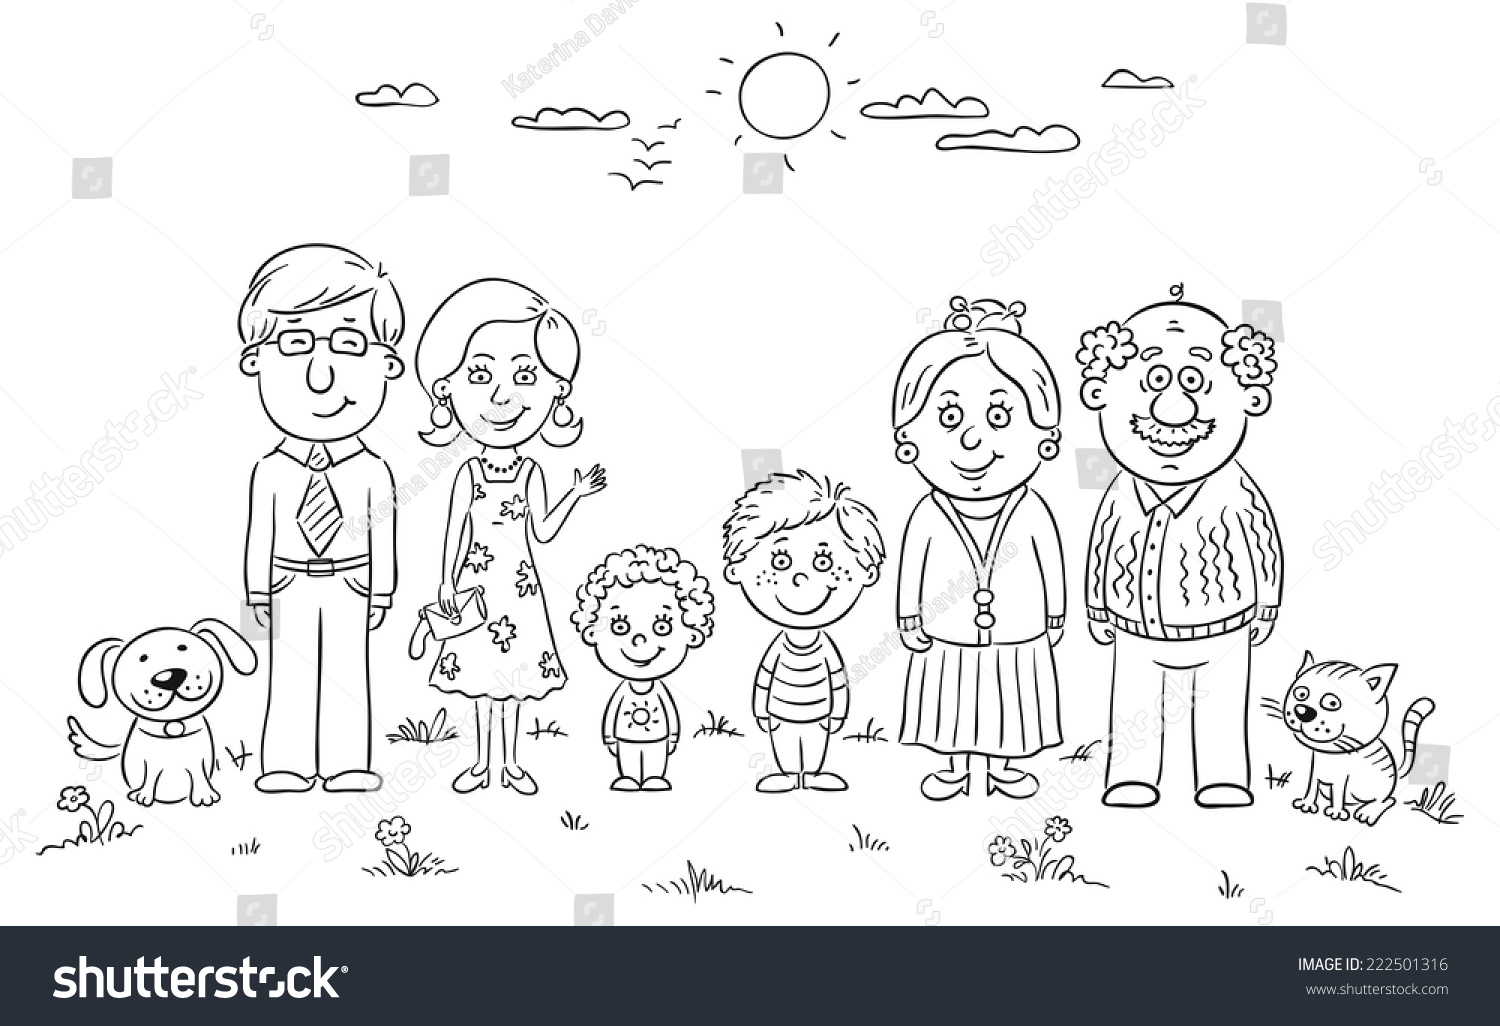 Big Happy Family Outdoors Black And White